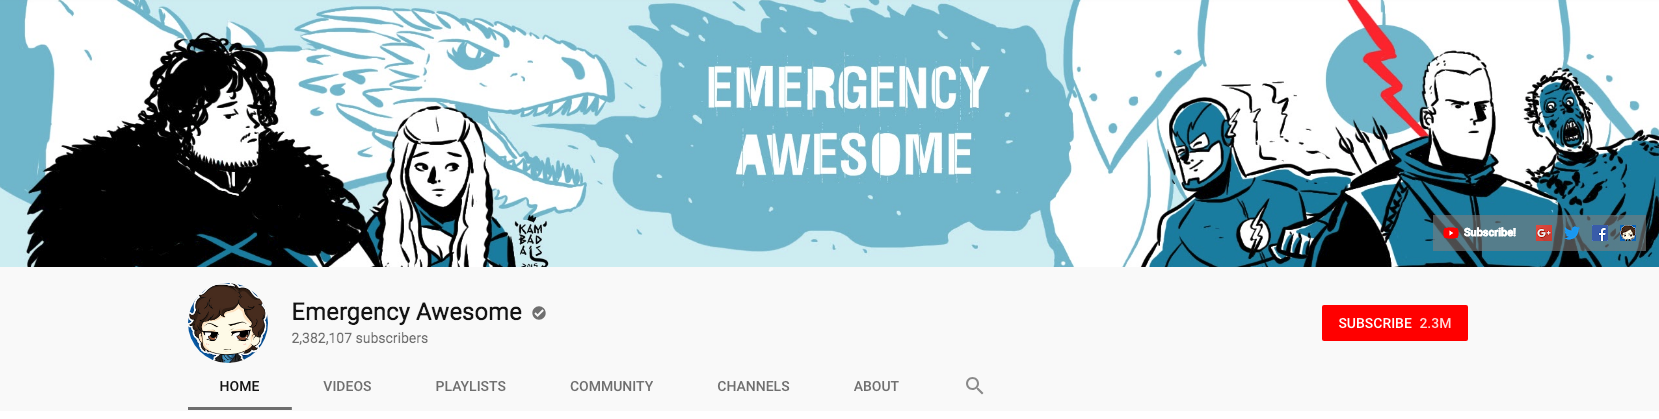 YouTube banner for Emergency Awesome channel.